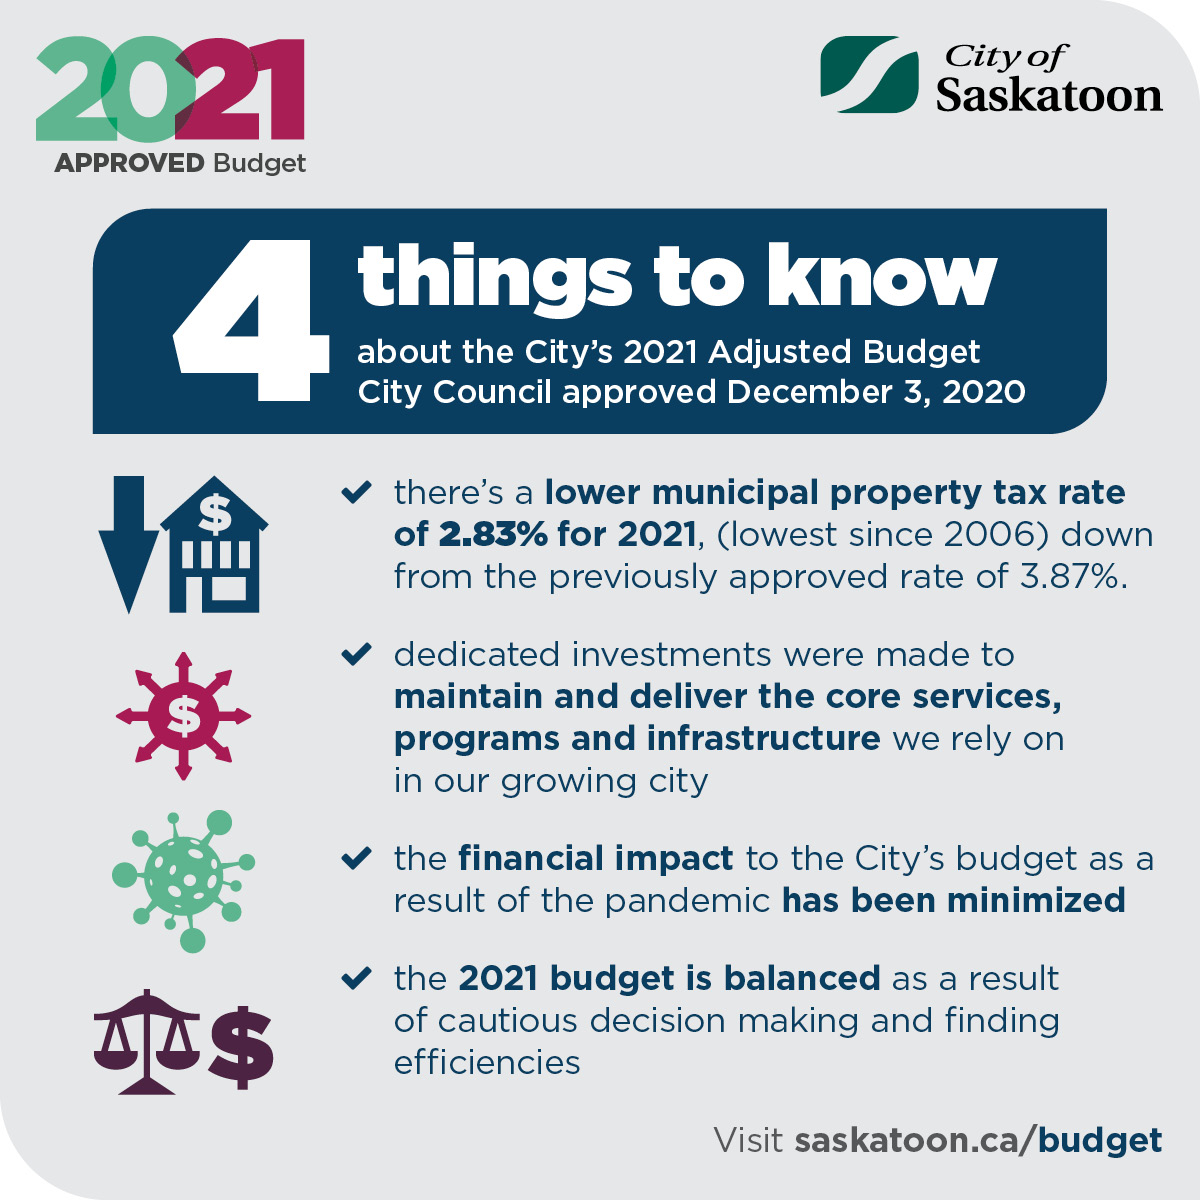 Graphic_3_FOUR_THINGS_TO_KNOW_ABOUT_THE_APPROVED_2021_BUDGET.jpg